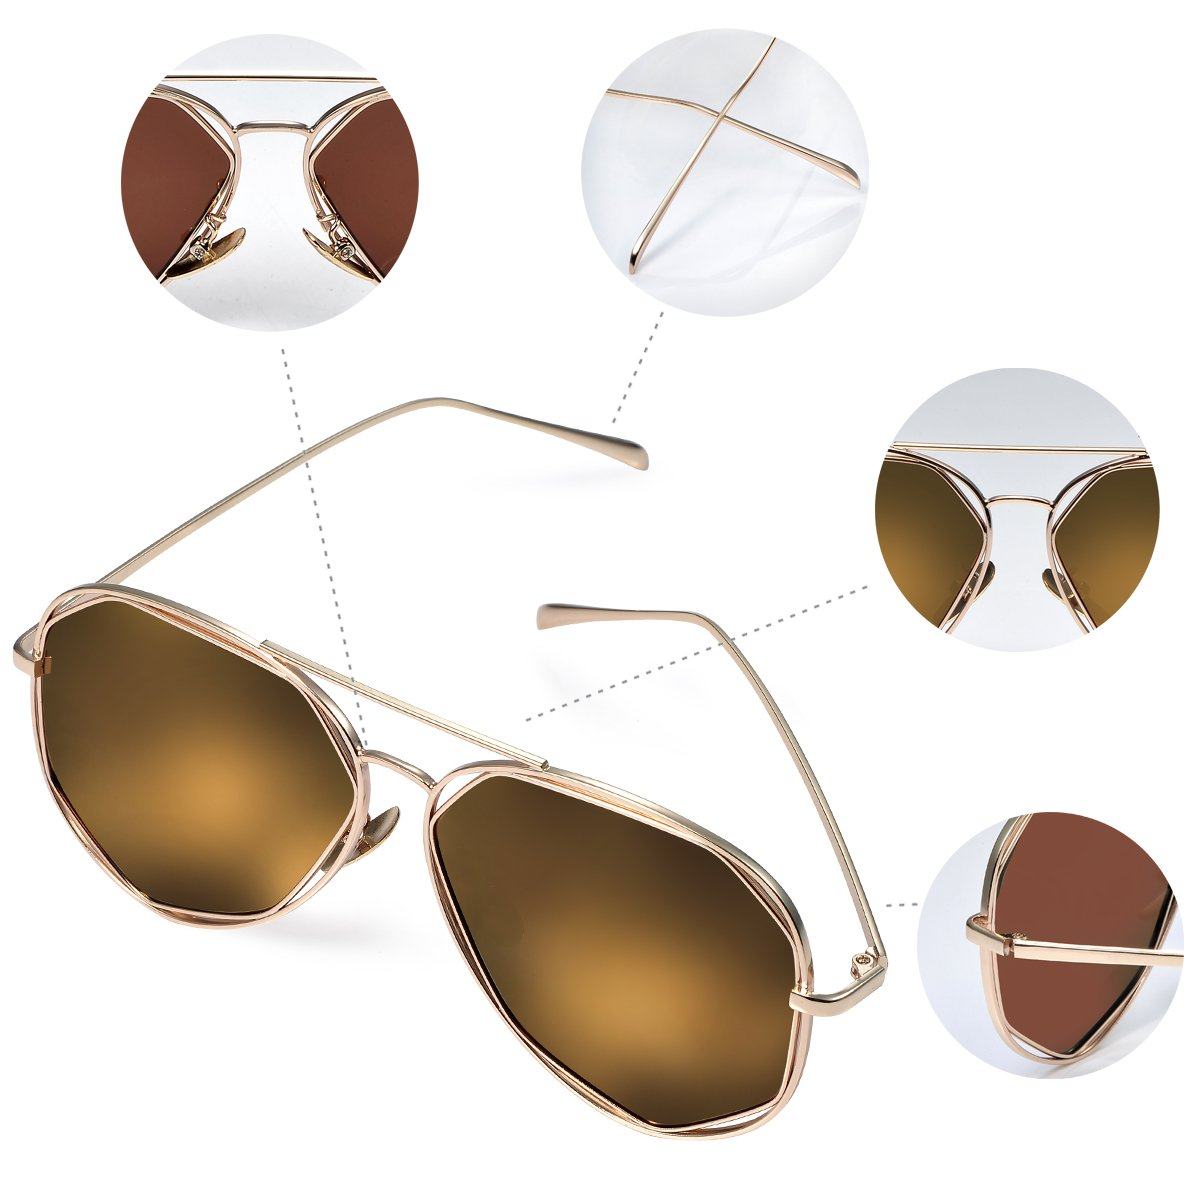 df064578f5559 Duduma Polarised Fashion Aviator Sunglasses with Flat Lens Metal Frame for  Women and Men 0713 (Gold frame with gold mirror lens)  Amazon.co.uk   Clothing